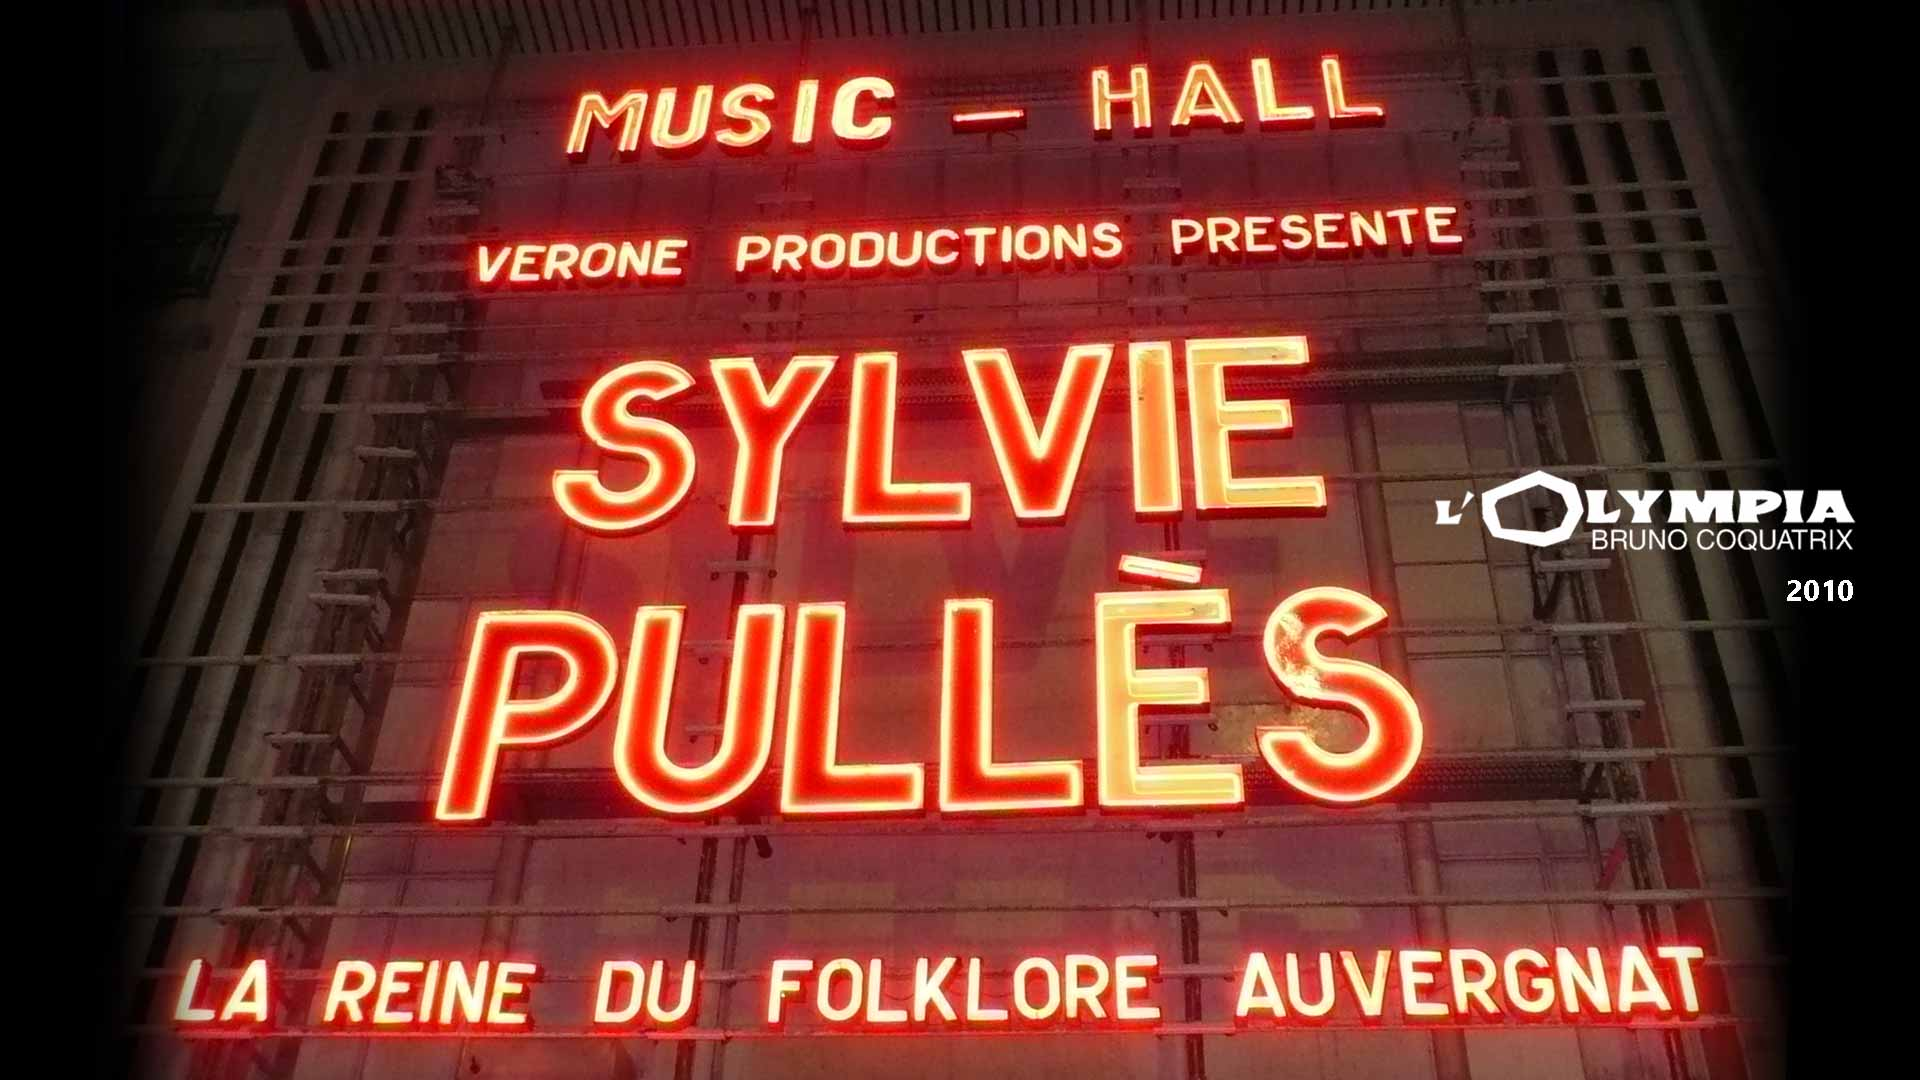 Sylvie Pulles